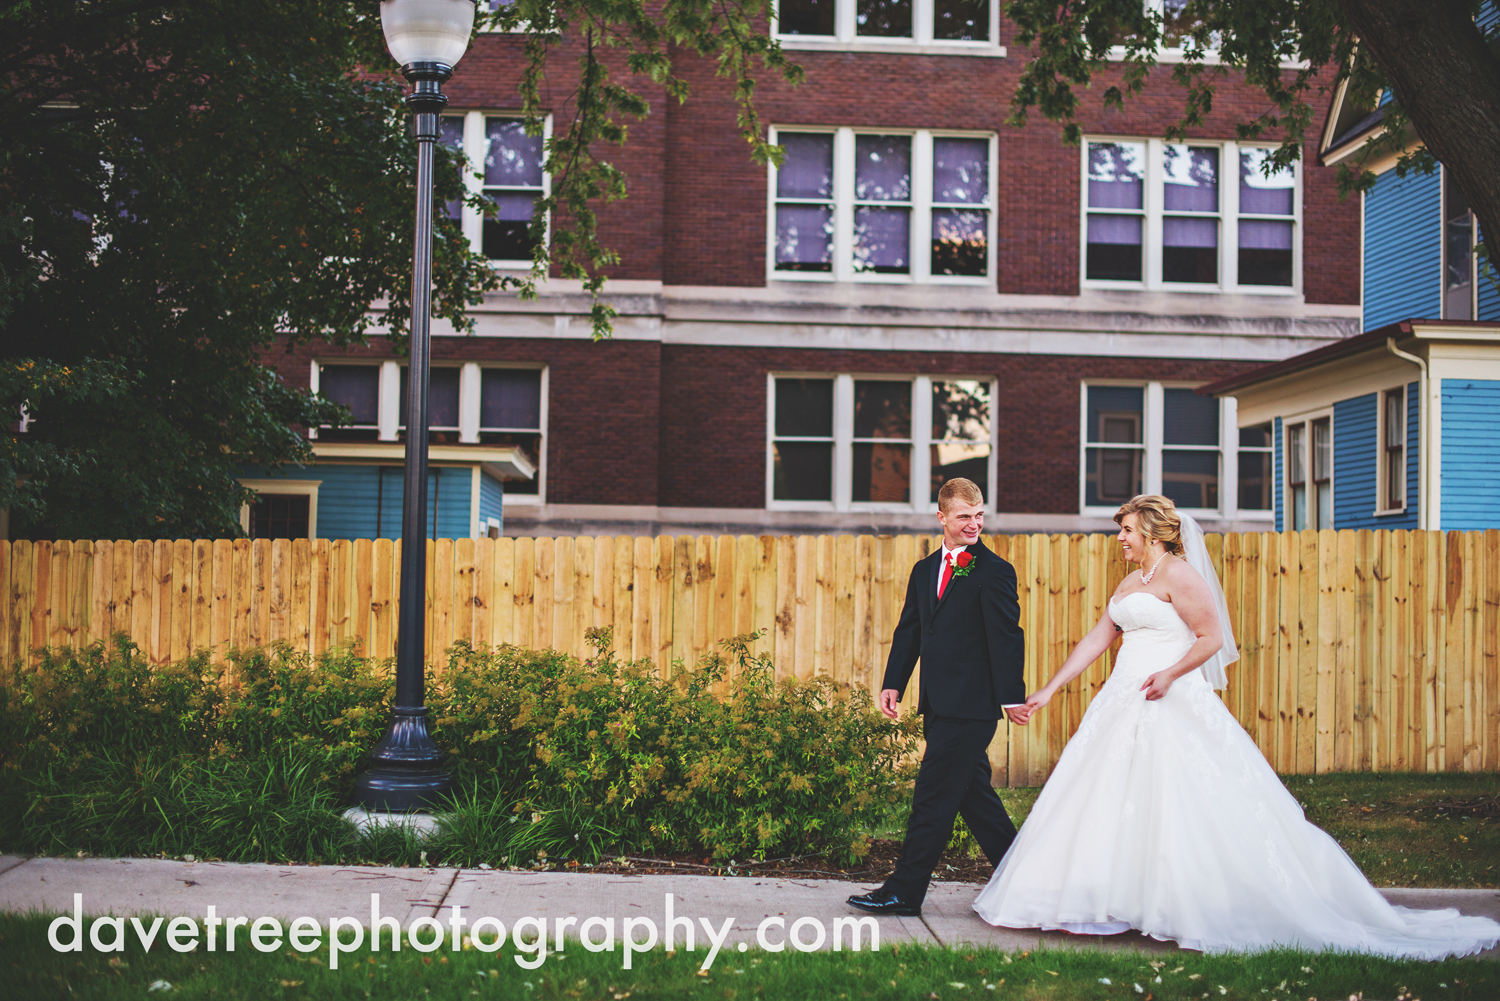 holland_wedding_photographer_20.jpg